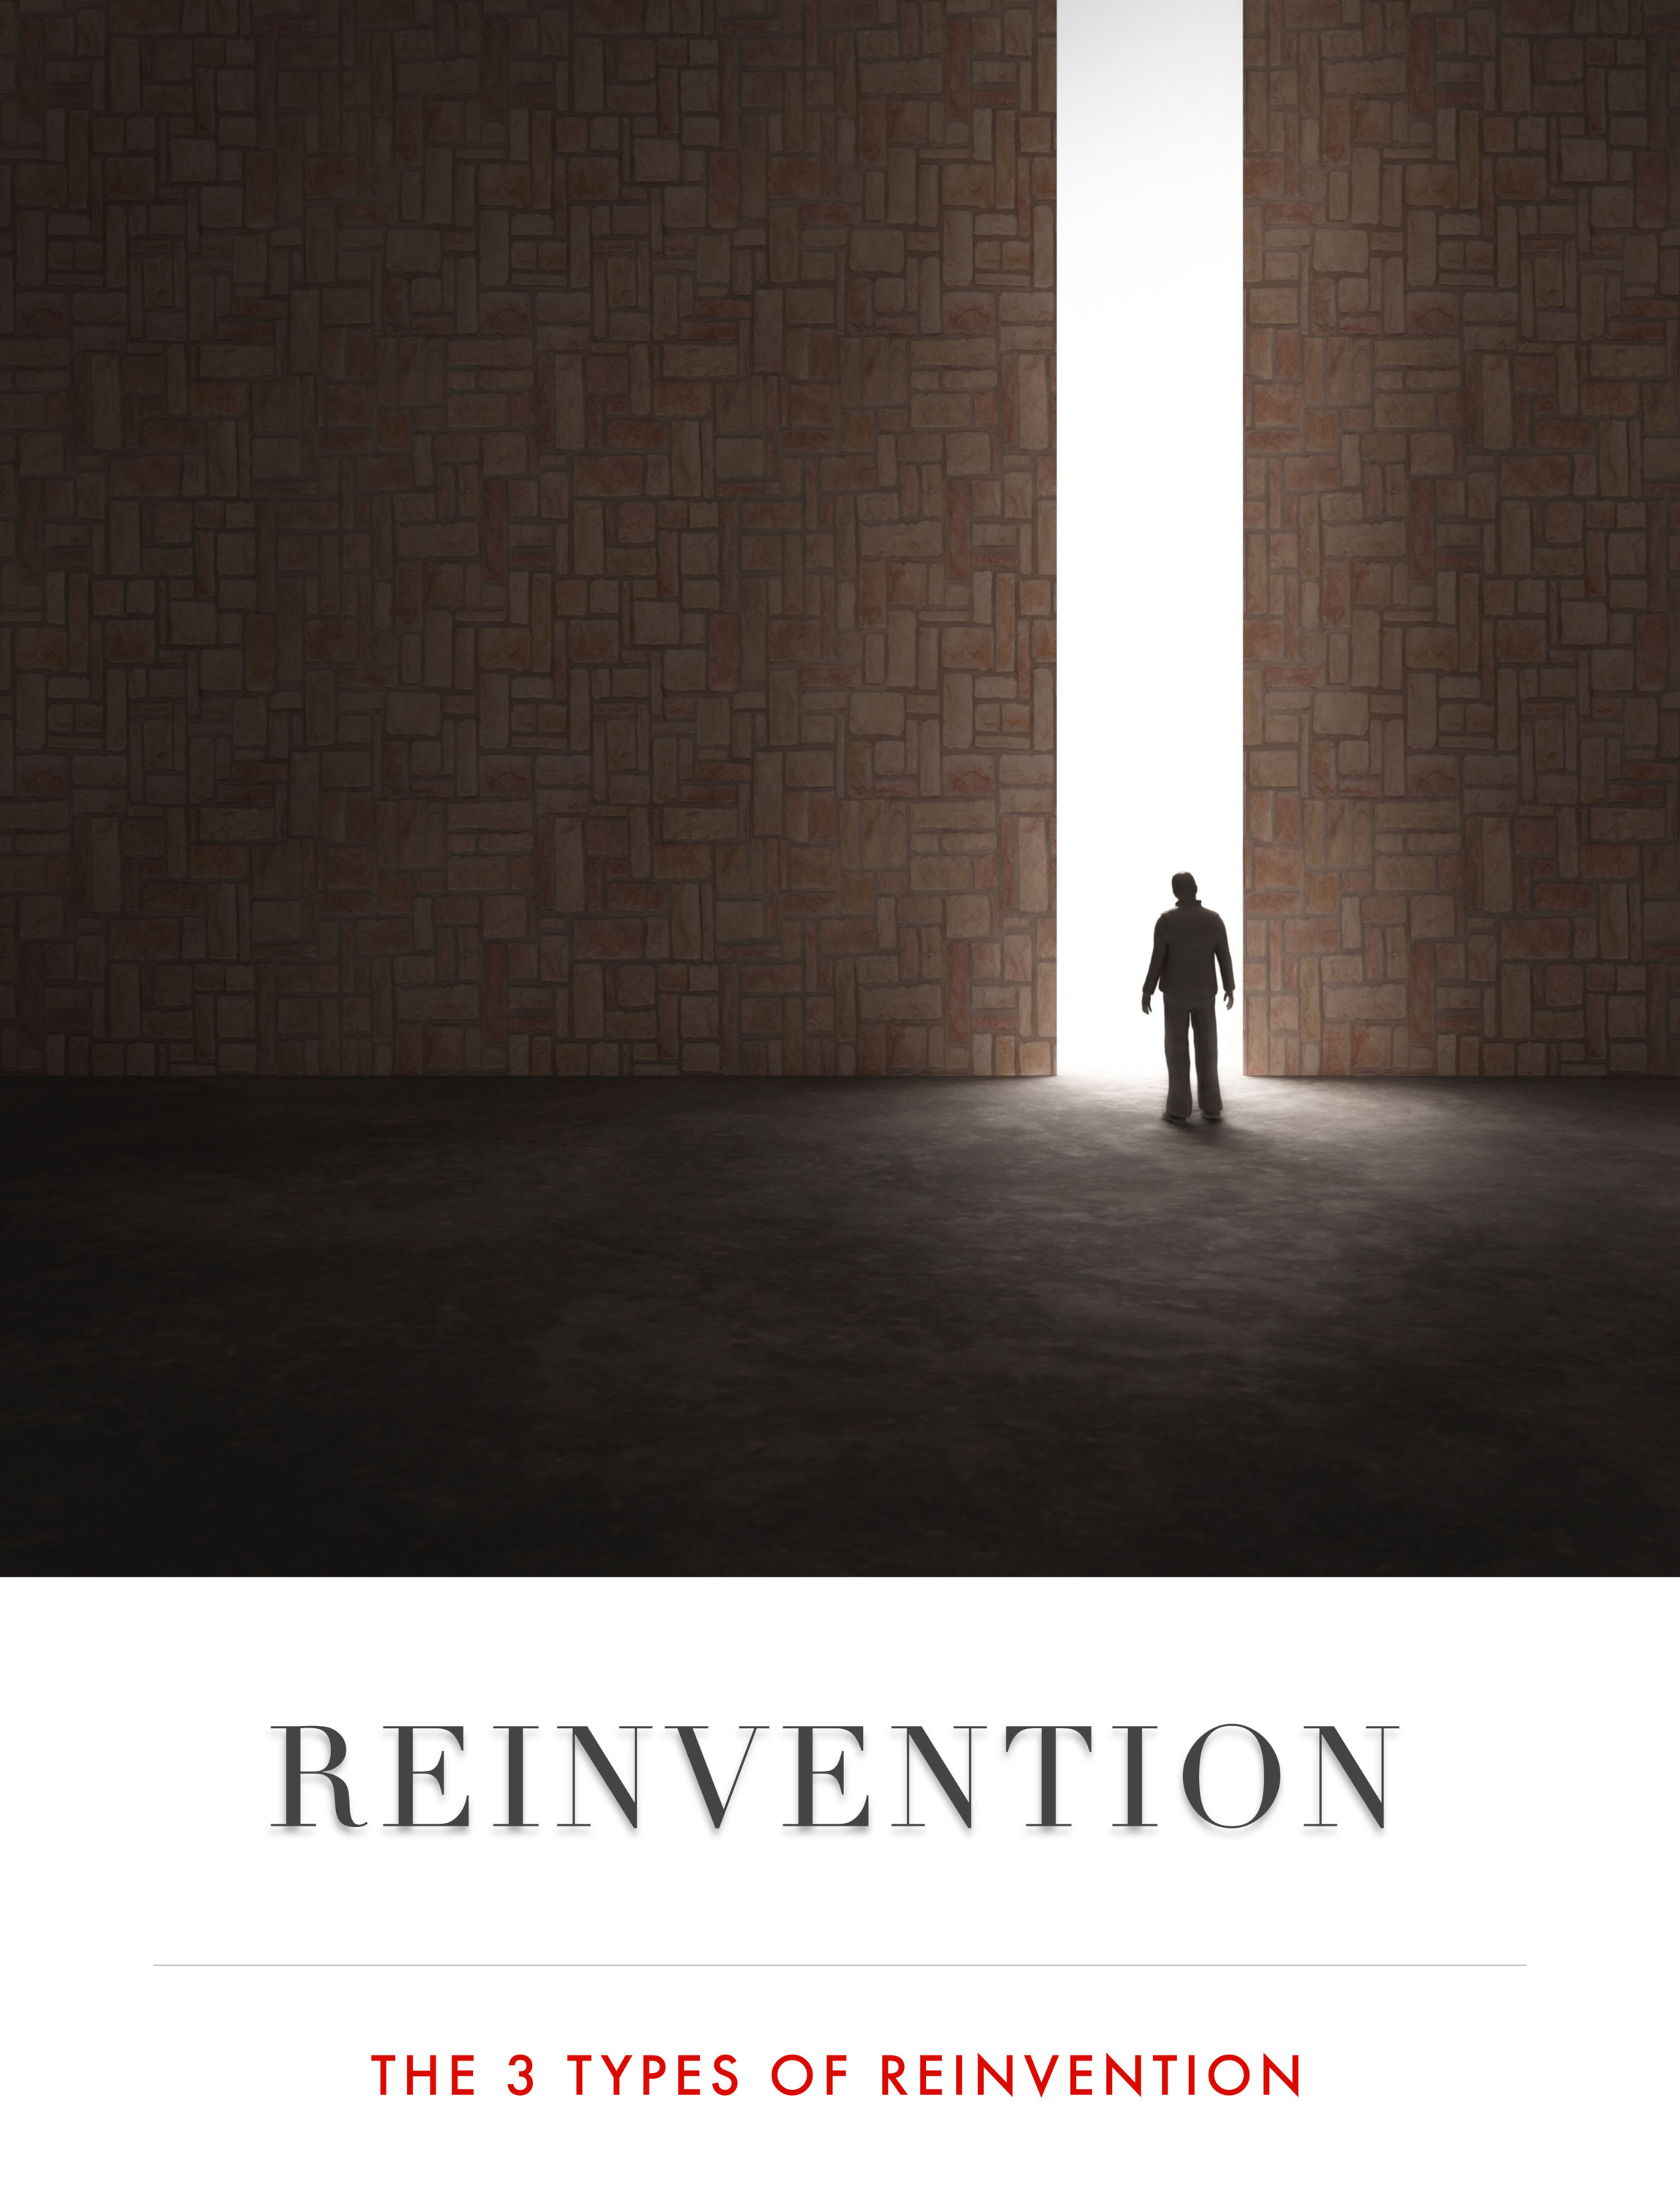 The 3 Types of Reinvention by John Mashni